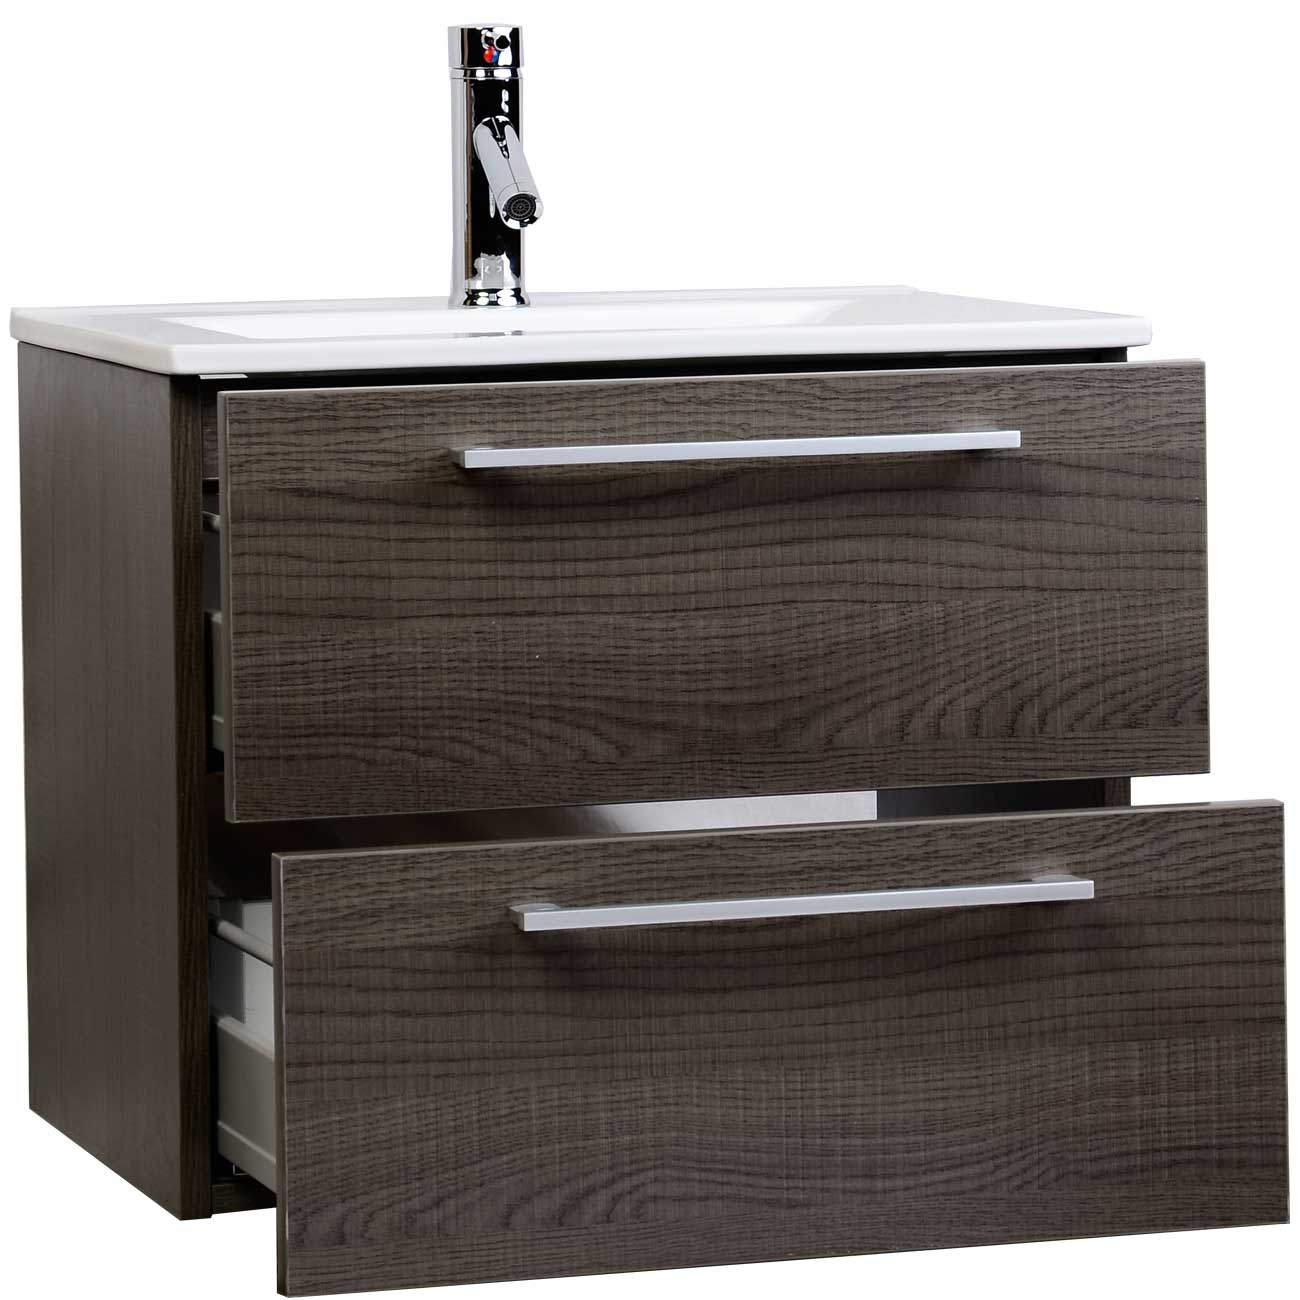 "European Bathroom Vanities european styled caen 23.5"" single bathroom vanity set in oak rs"